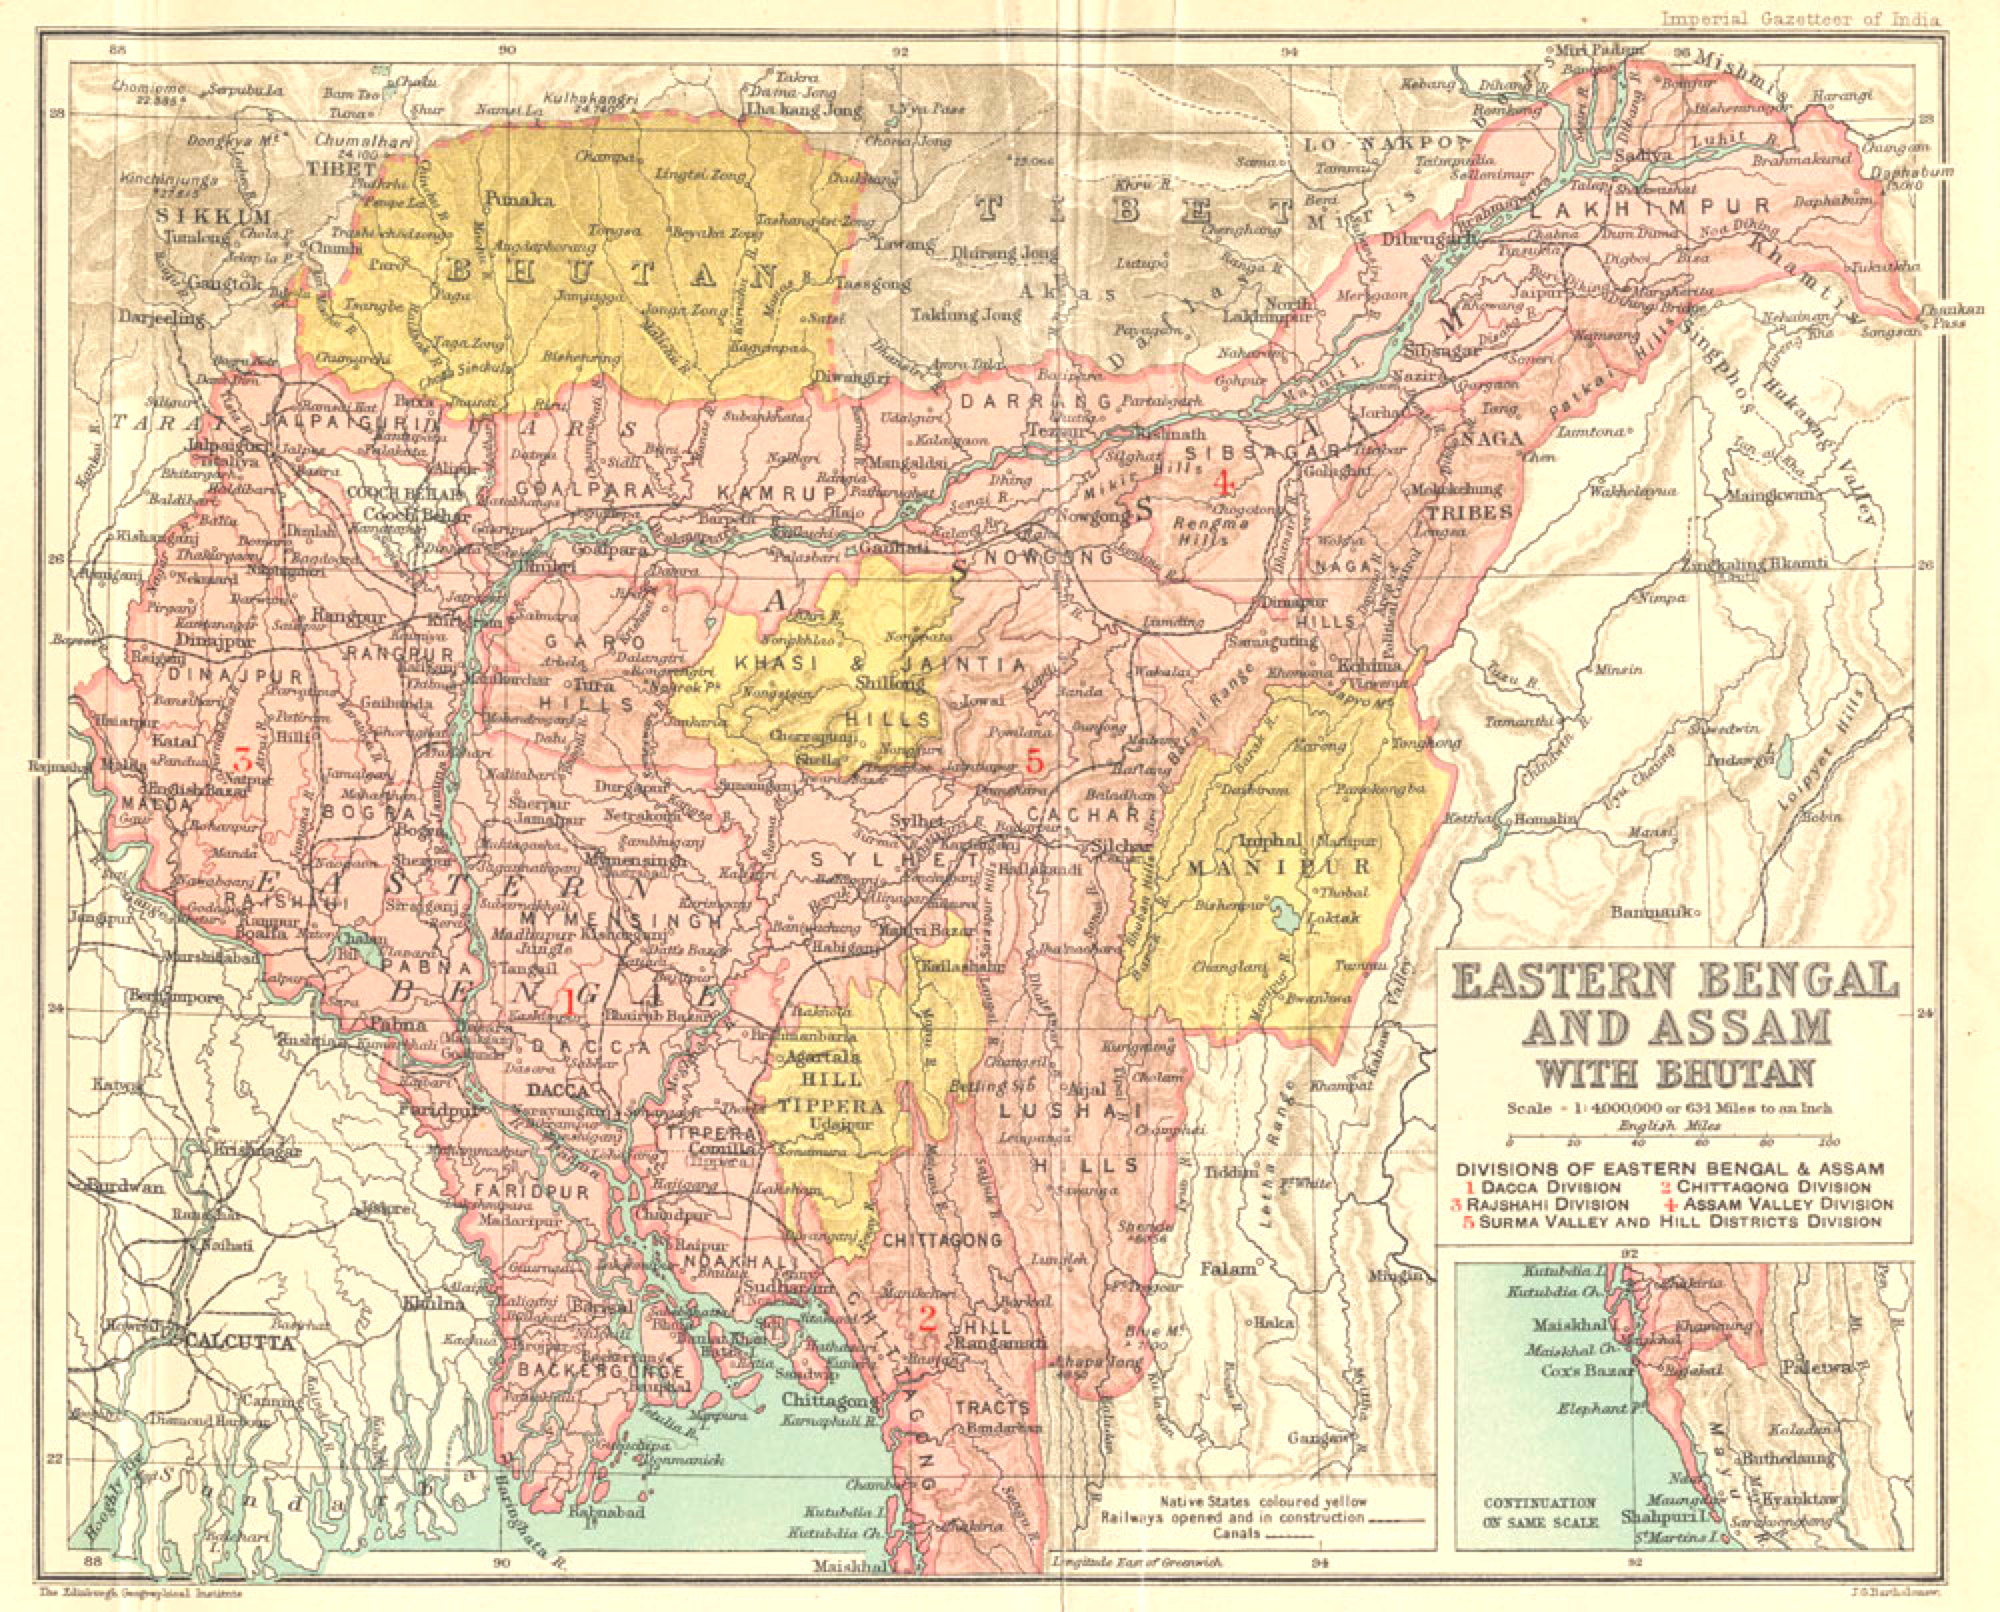 http://upload.wikimedia.org/wikipedia/commons/6/64/Bengal_gazetteer_1907-9.jpg